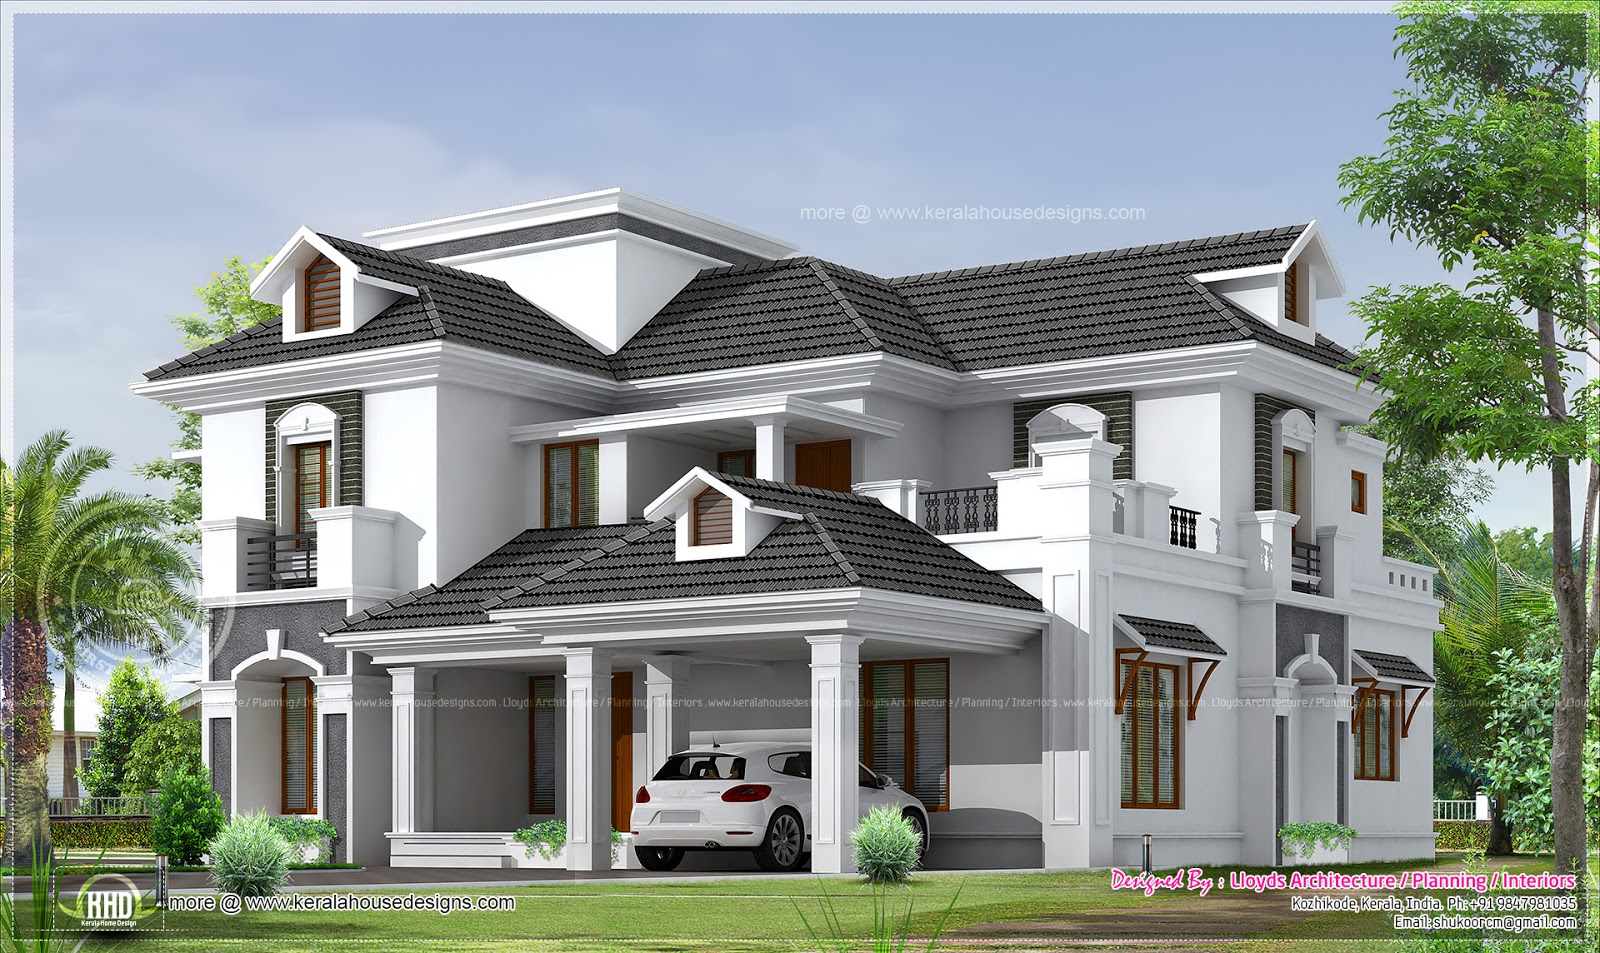 and elevation designed by architect shukoor c manapat calicut kerala